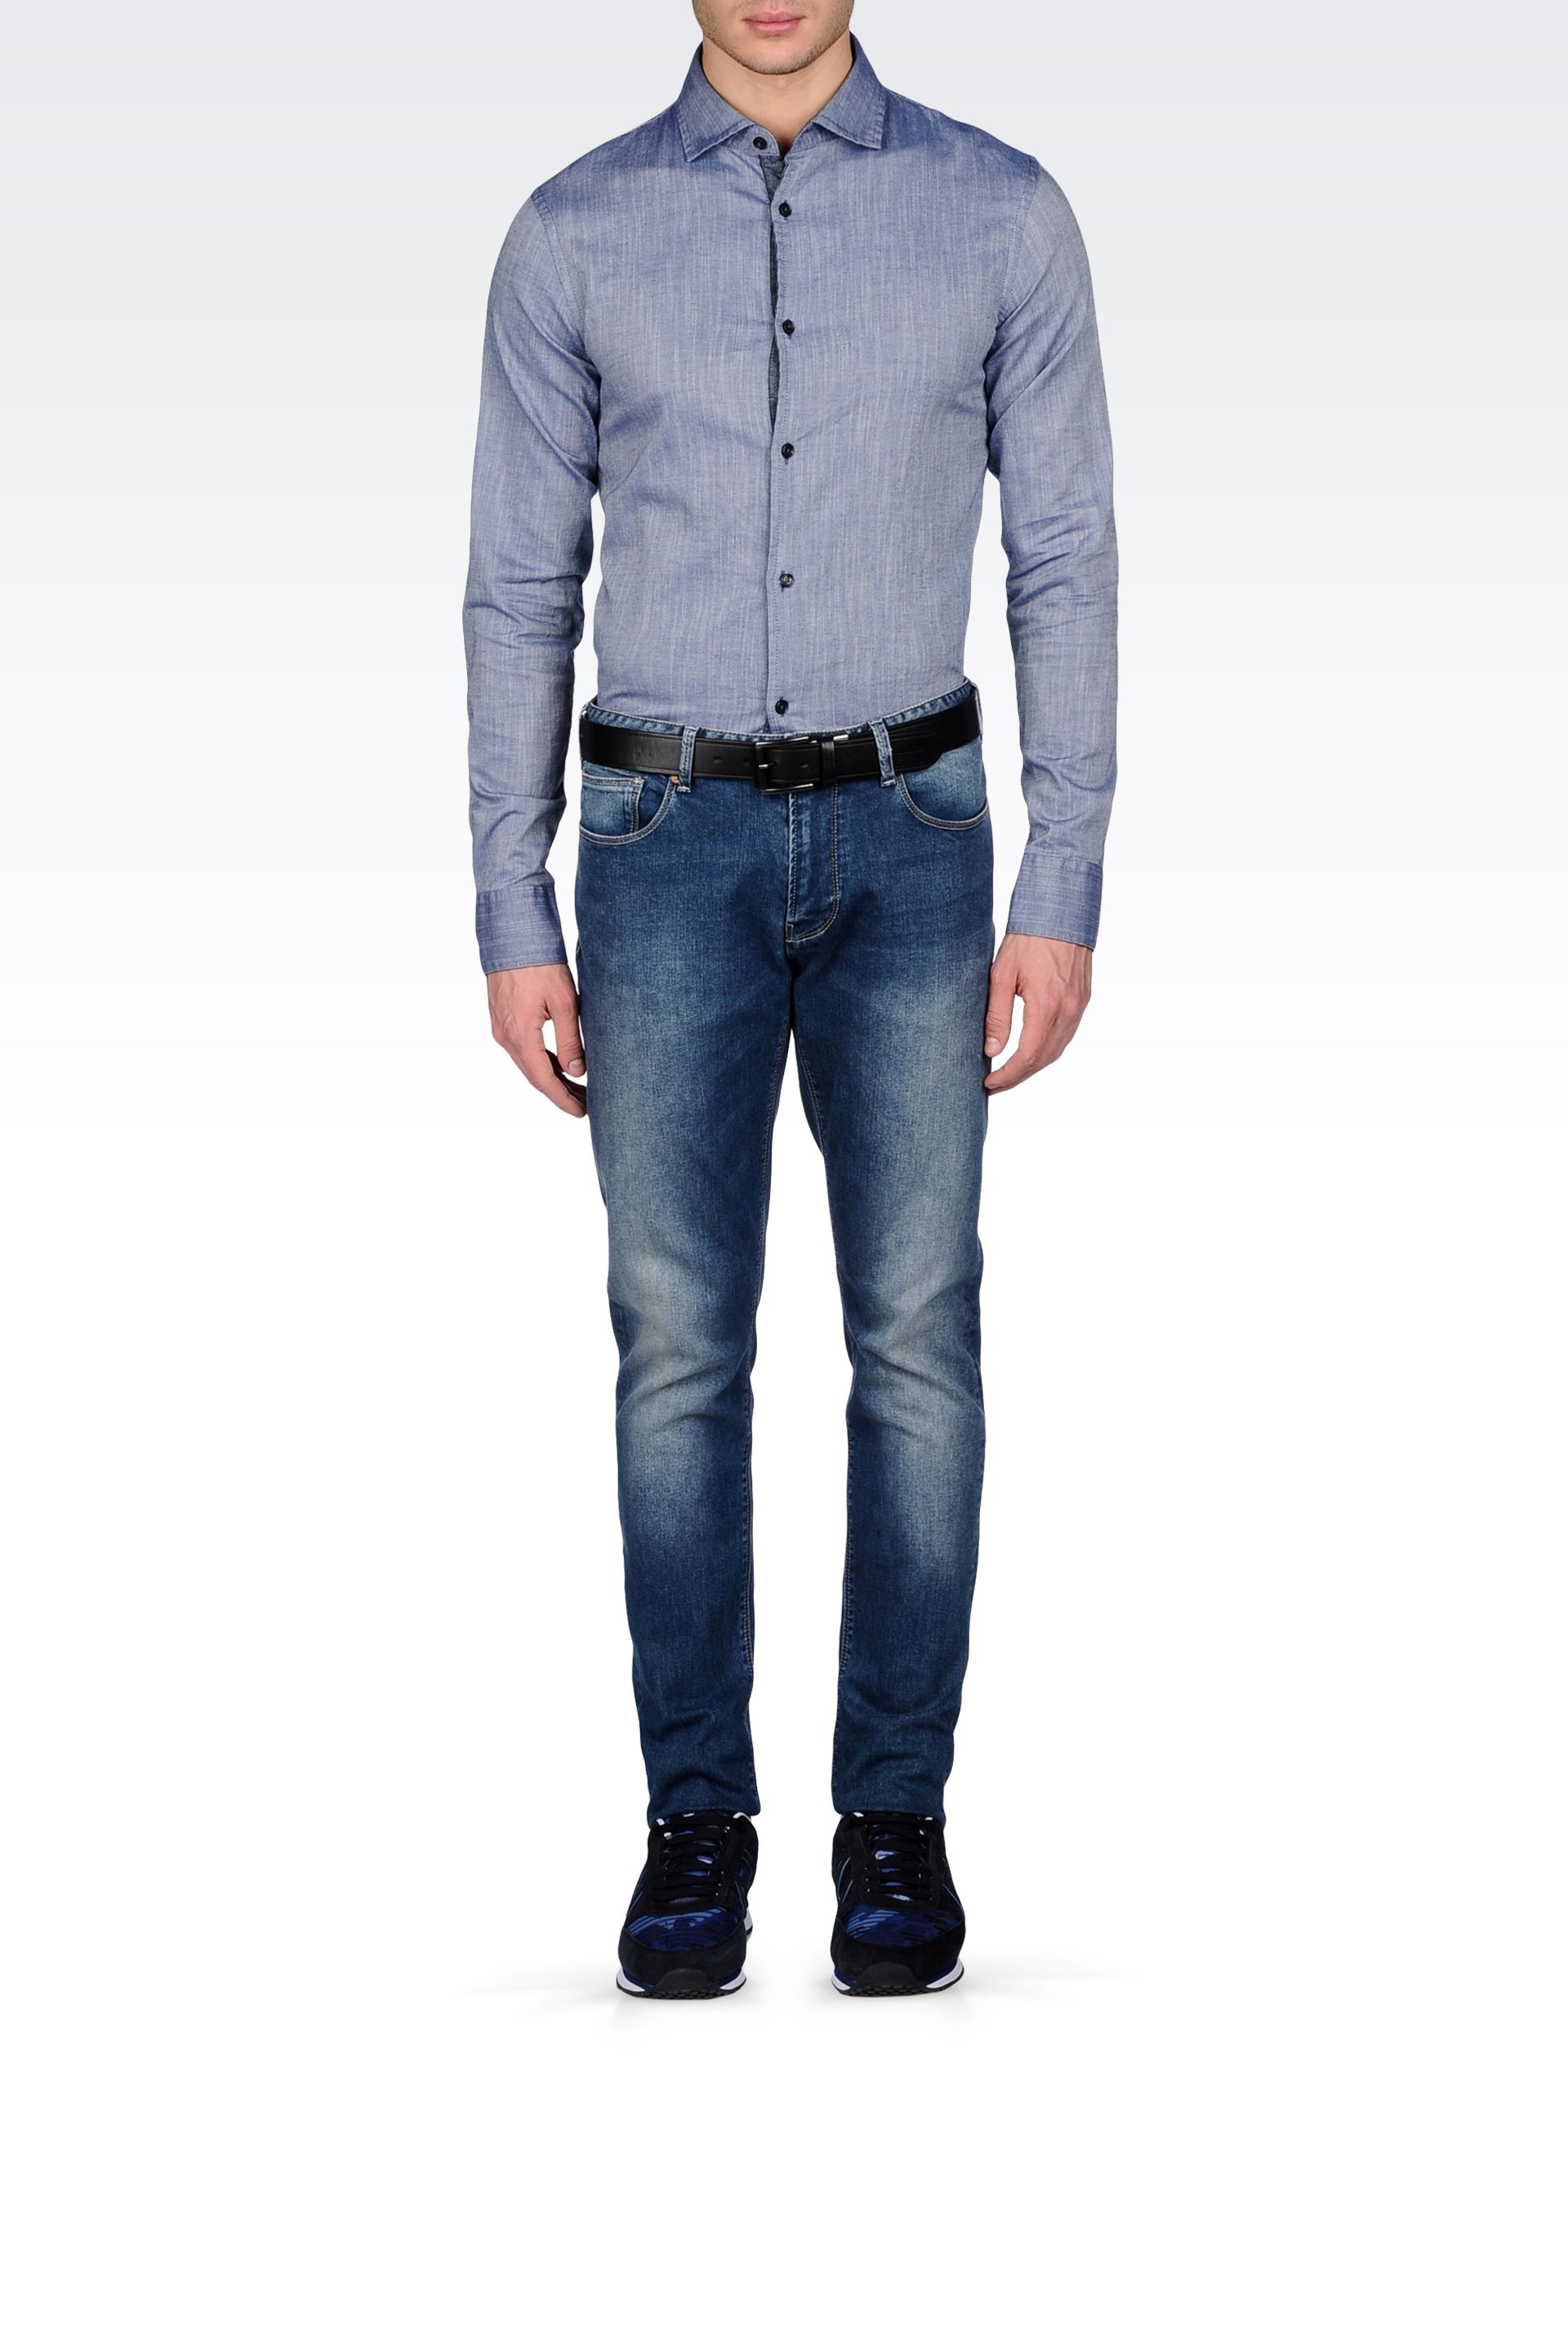 Lyst armani jeans chambray cotton shirt with logo in for Chambray jeans